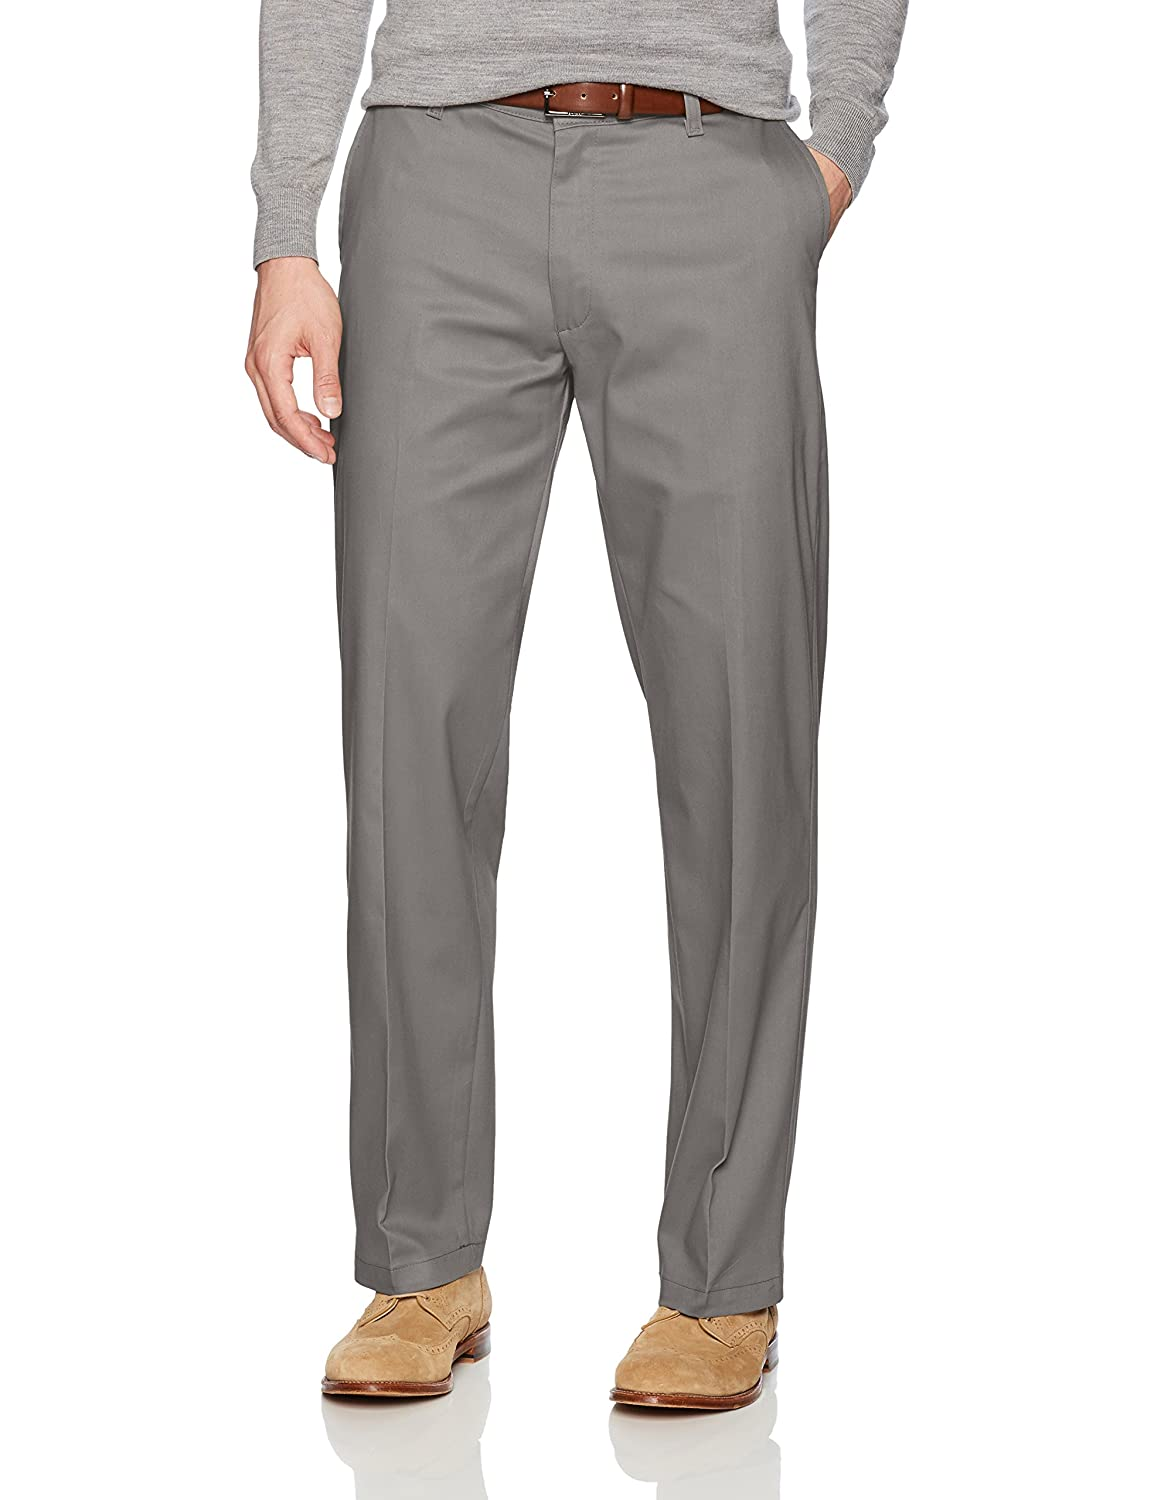 Lee Mens Total Freedom Stretch Relaxed Fit Flat Front Pant Lee Men's Sportswear 42831